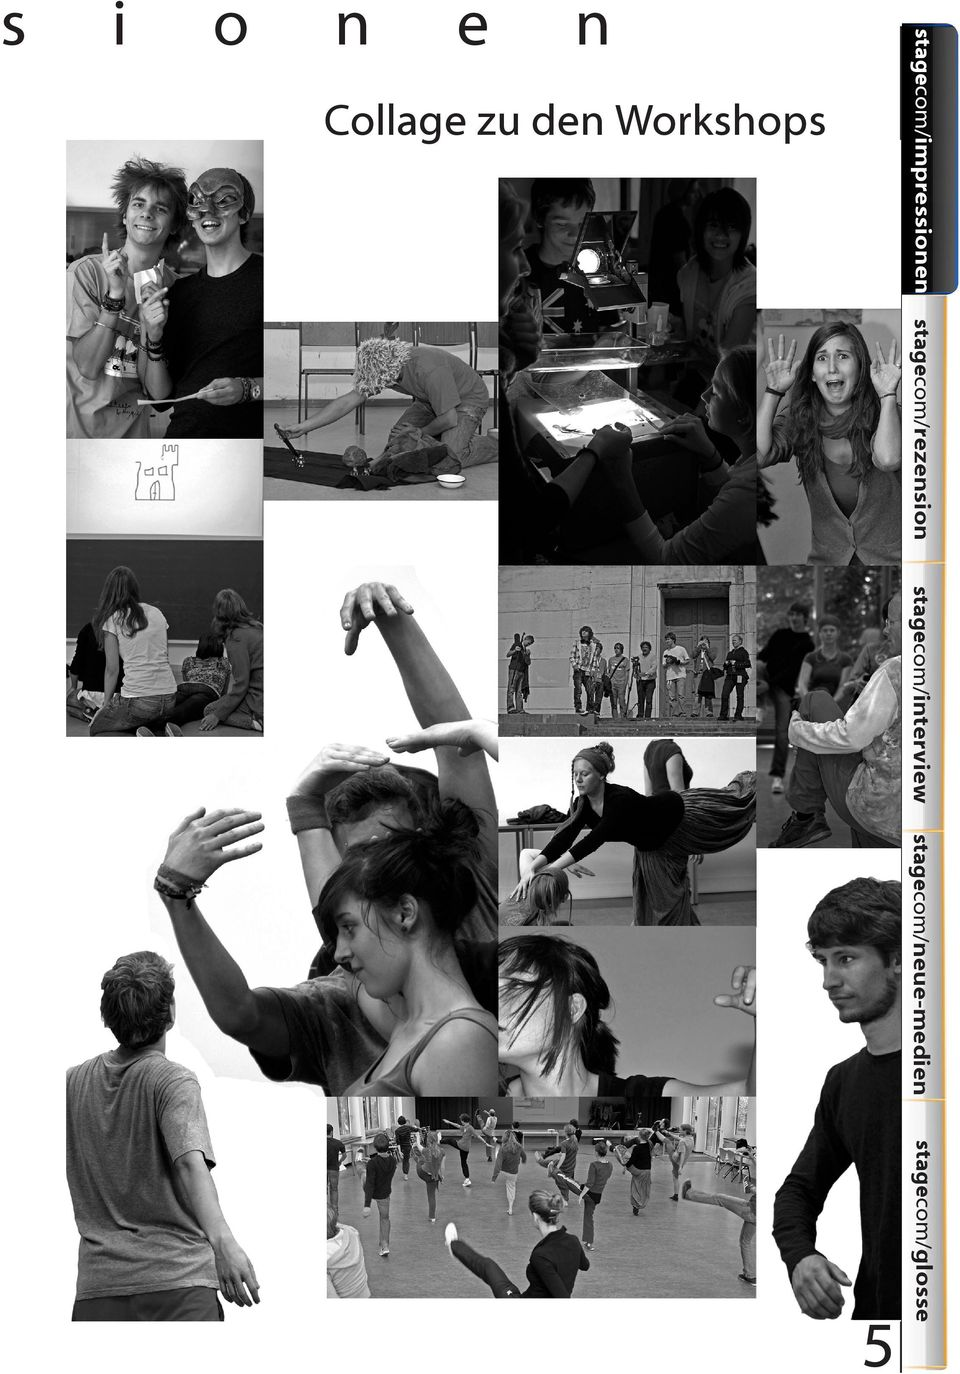 Collag zu dn Workshops